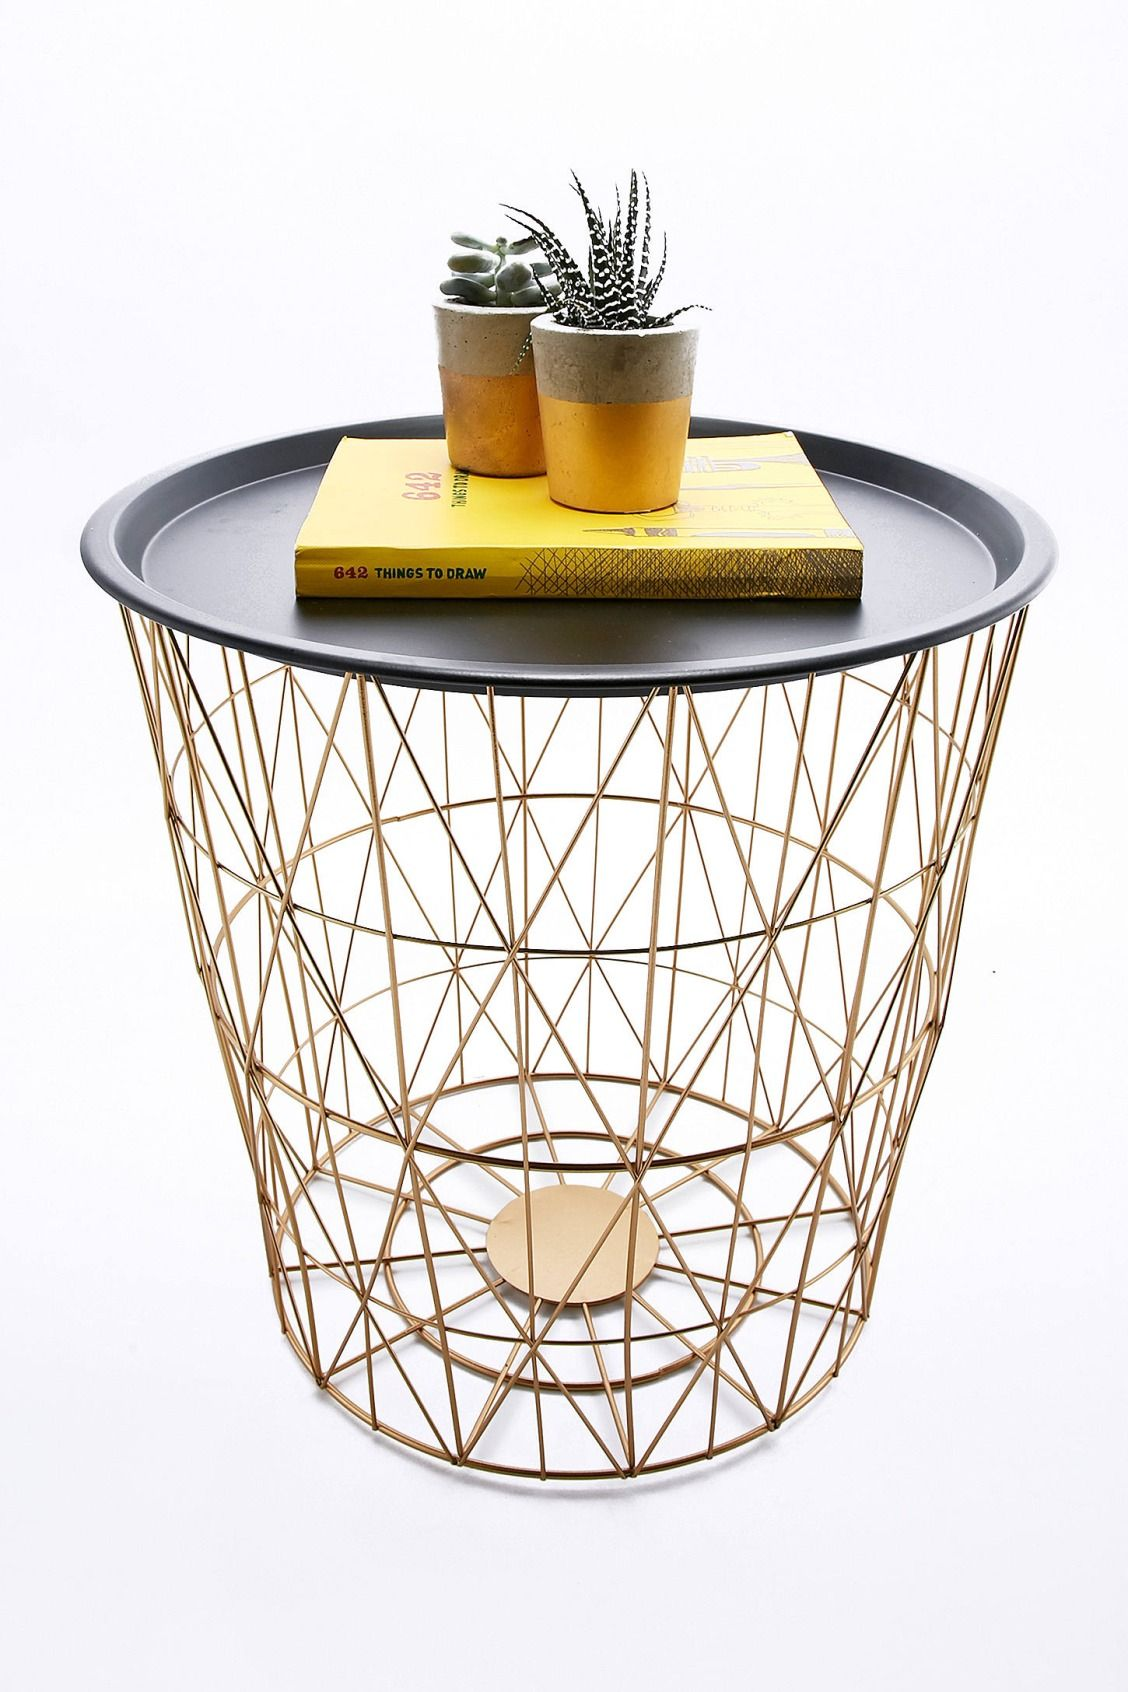 wire basket side table urban outfitters home gifts furniture accent with baskets tables uoeurope urbanoutfitterseu lamps usb builders lighting narrow depth console beach cottage